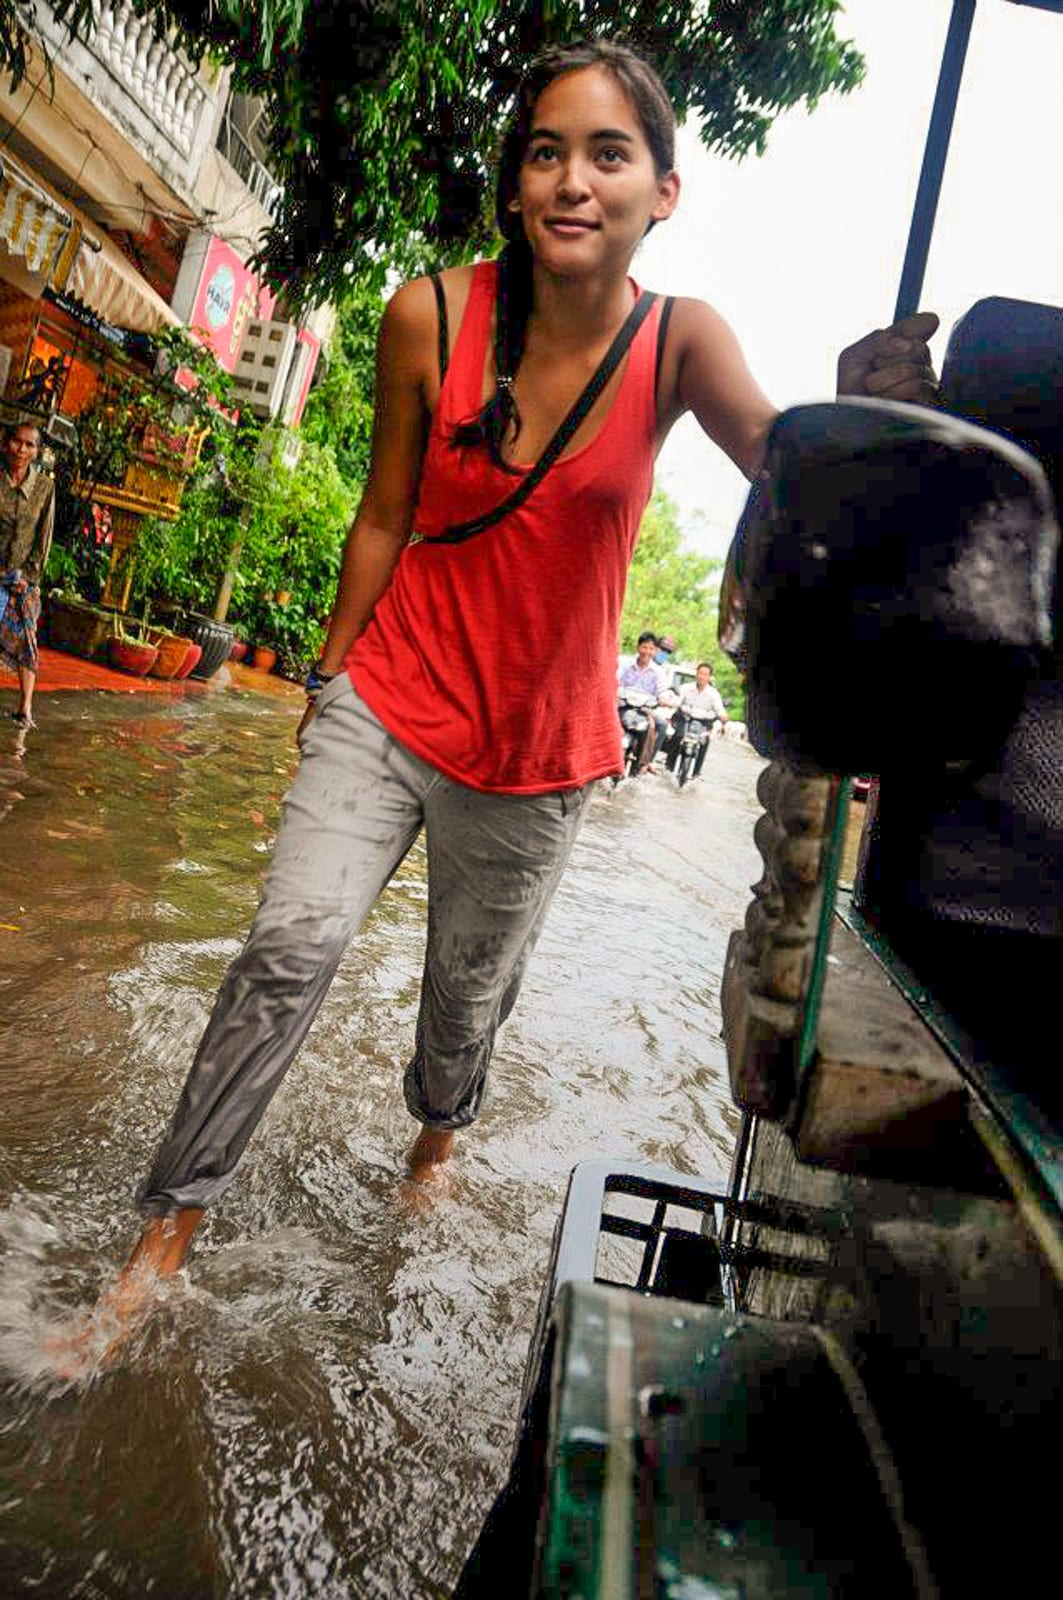 How I afford full-time travel - Pushing a tuktuk through Phom Penh, Cambodia during monsoon - Lost With Purpose travel blog